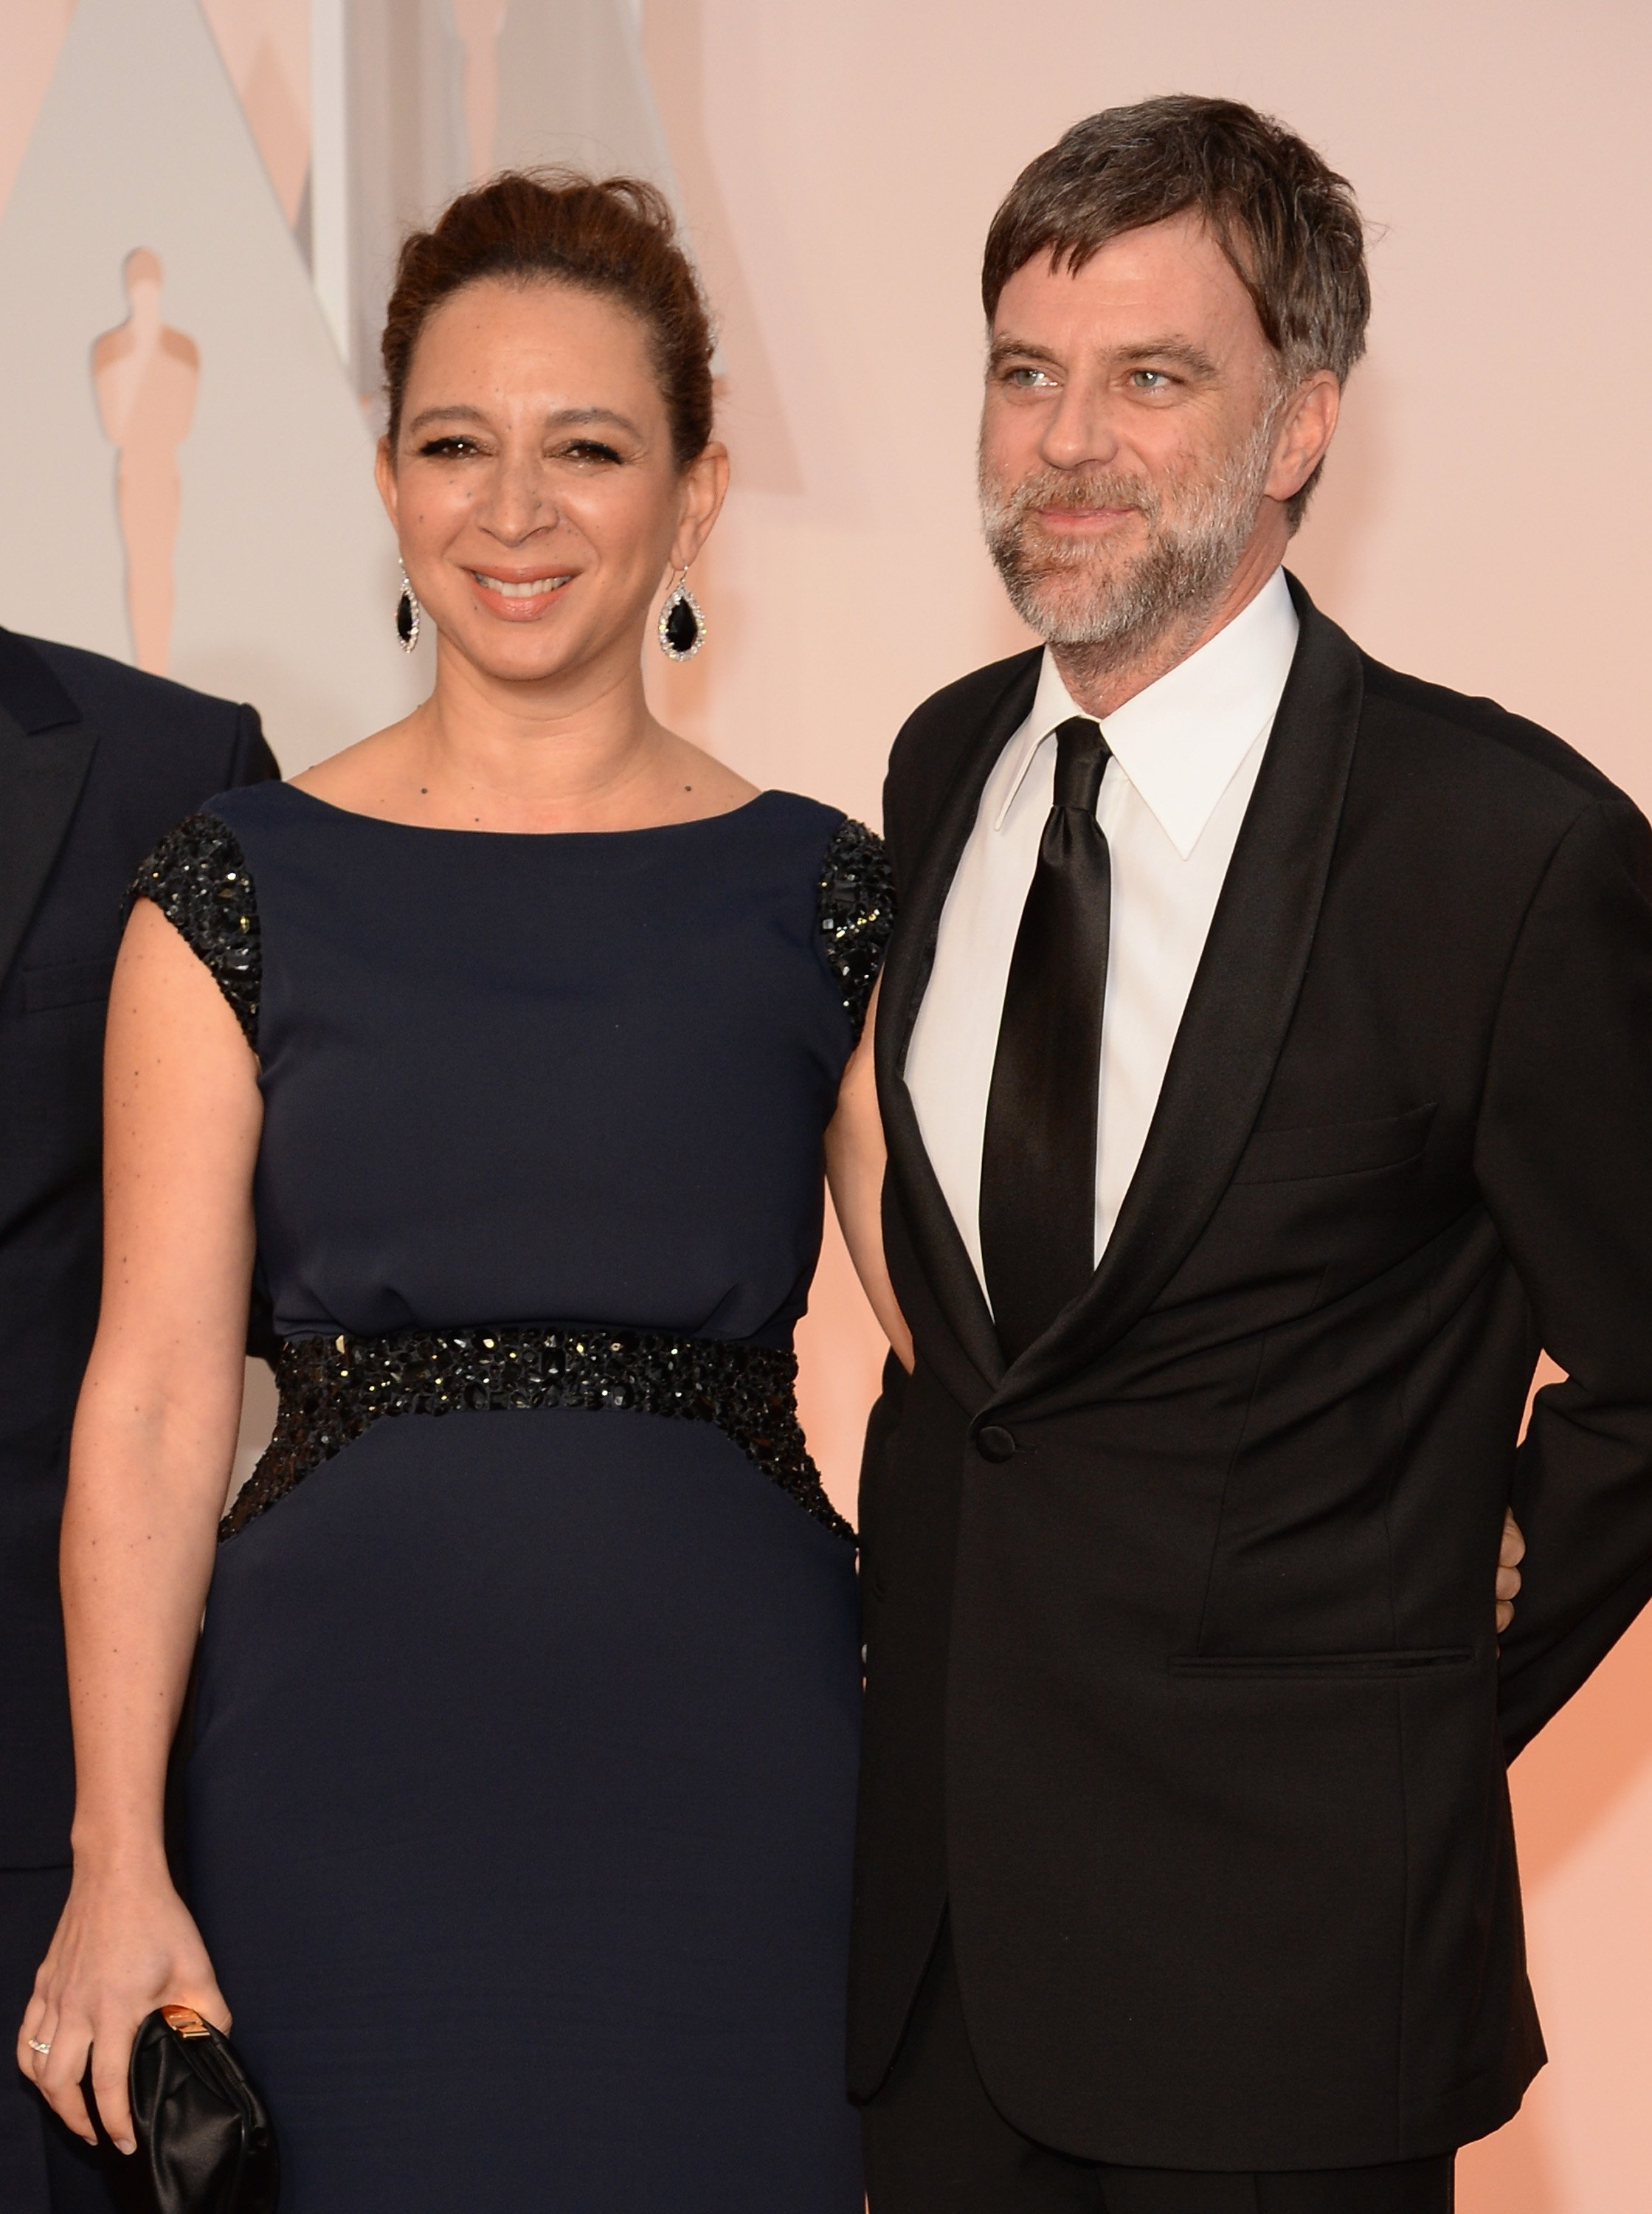 Maya Rudolph and Paul Thomas Anderson at the 87th Annual Academy Awards on February 22, 2015 in Hollywood, California   Photo: Getty Images